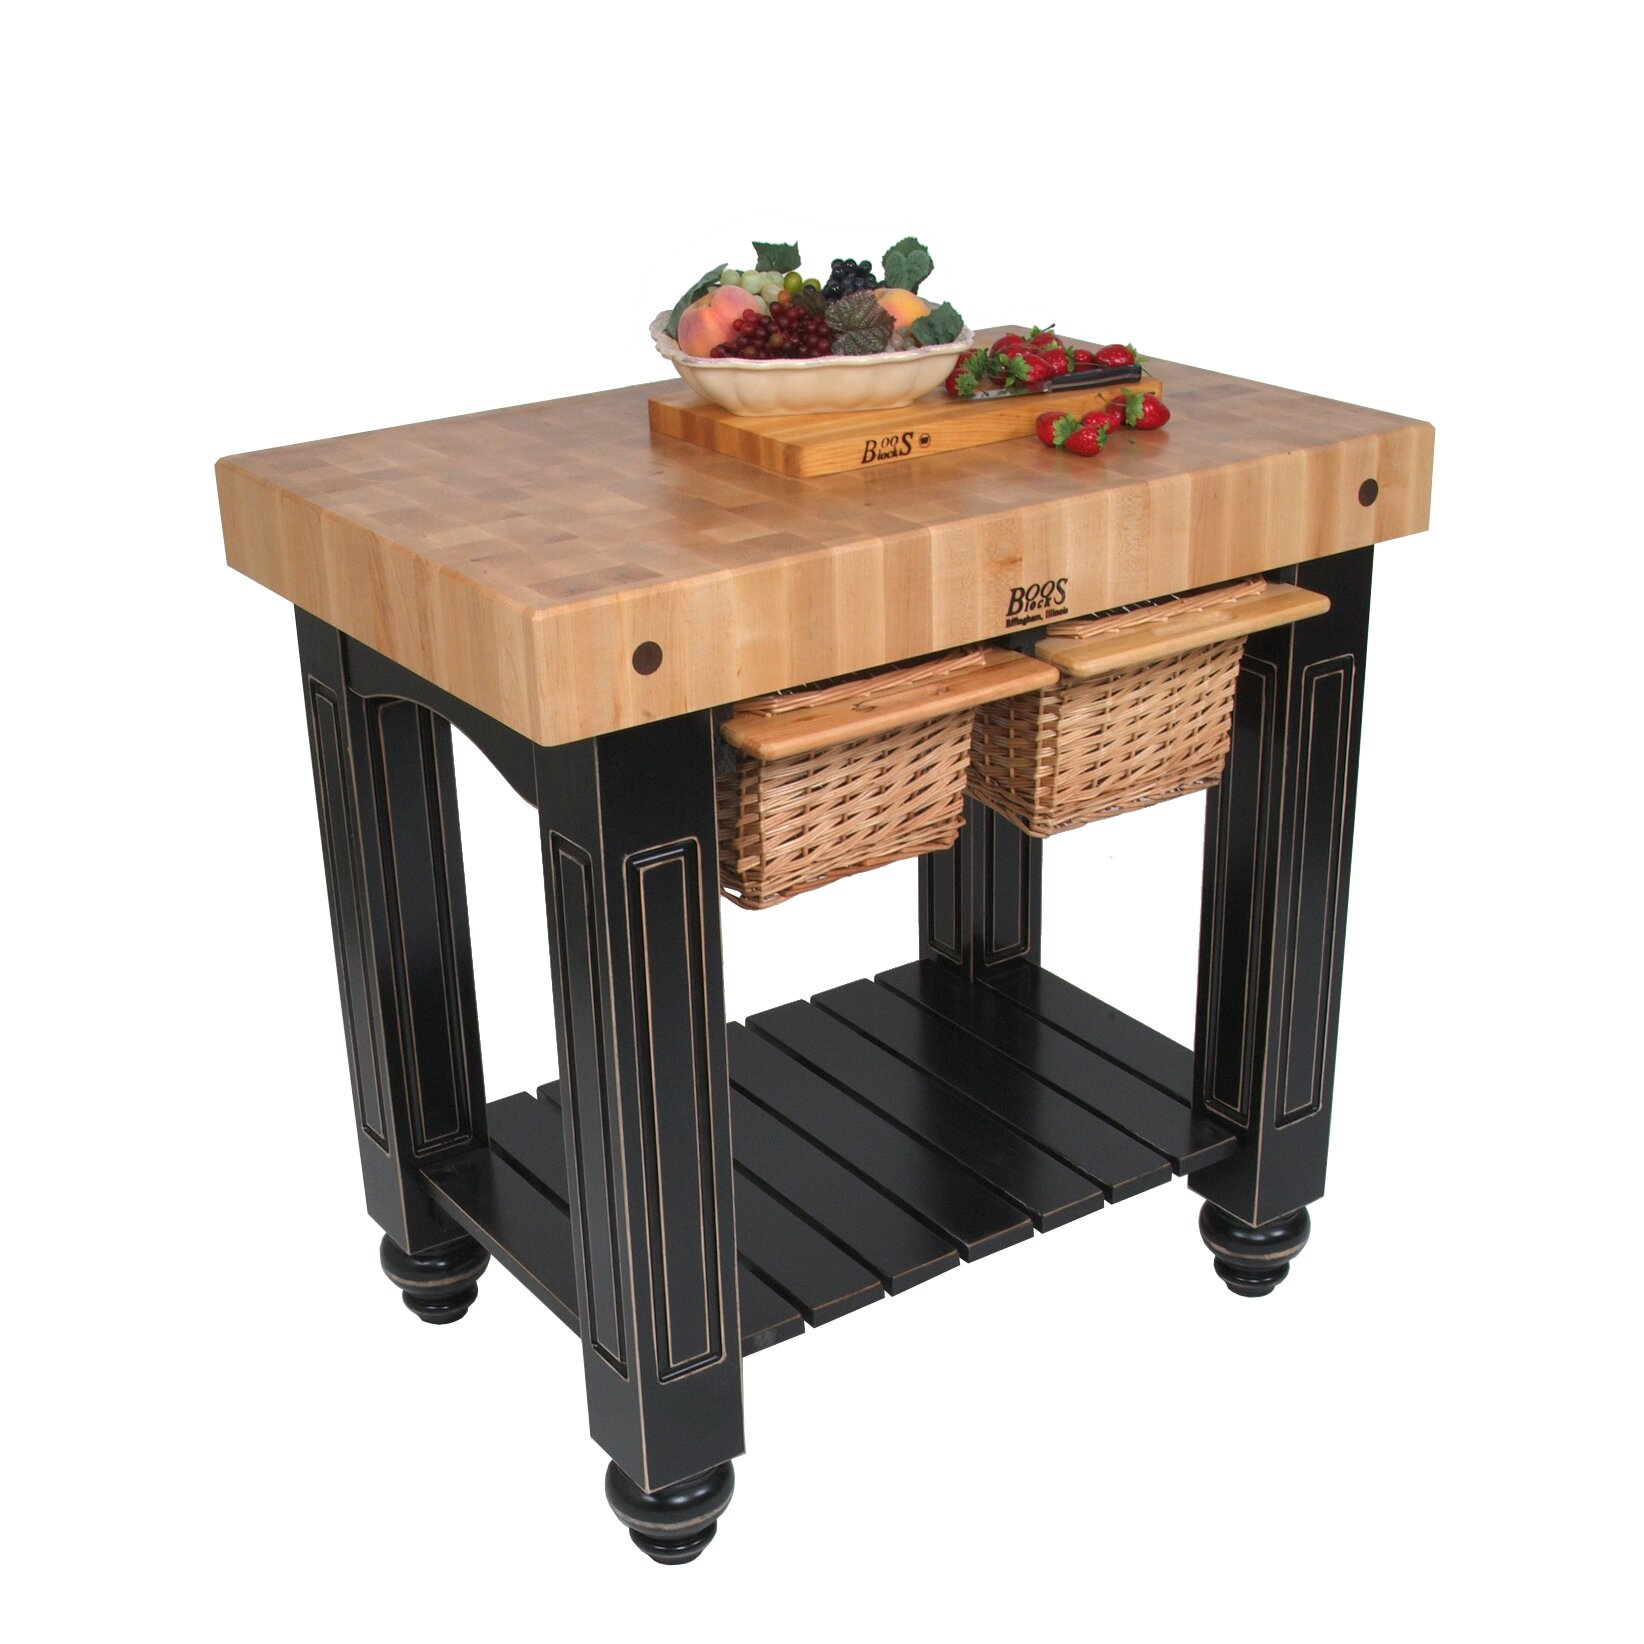 Boos Kitchen Islands Sale Boos Kitchen Islands Sale 28 Images All About Boos